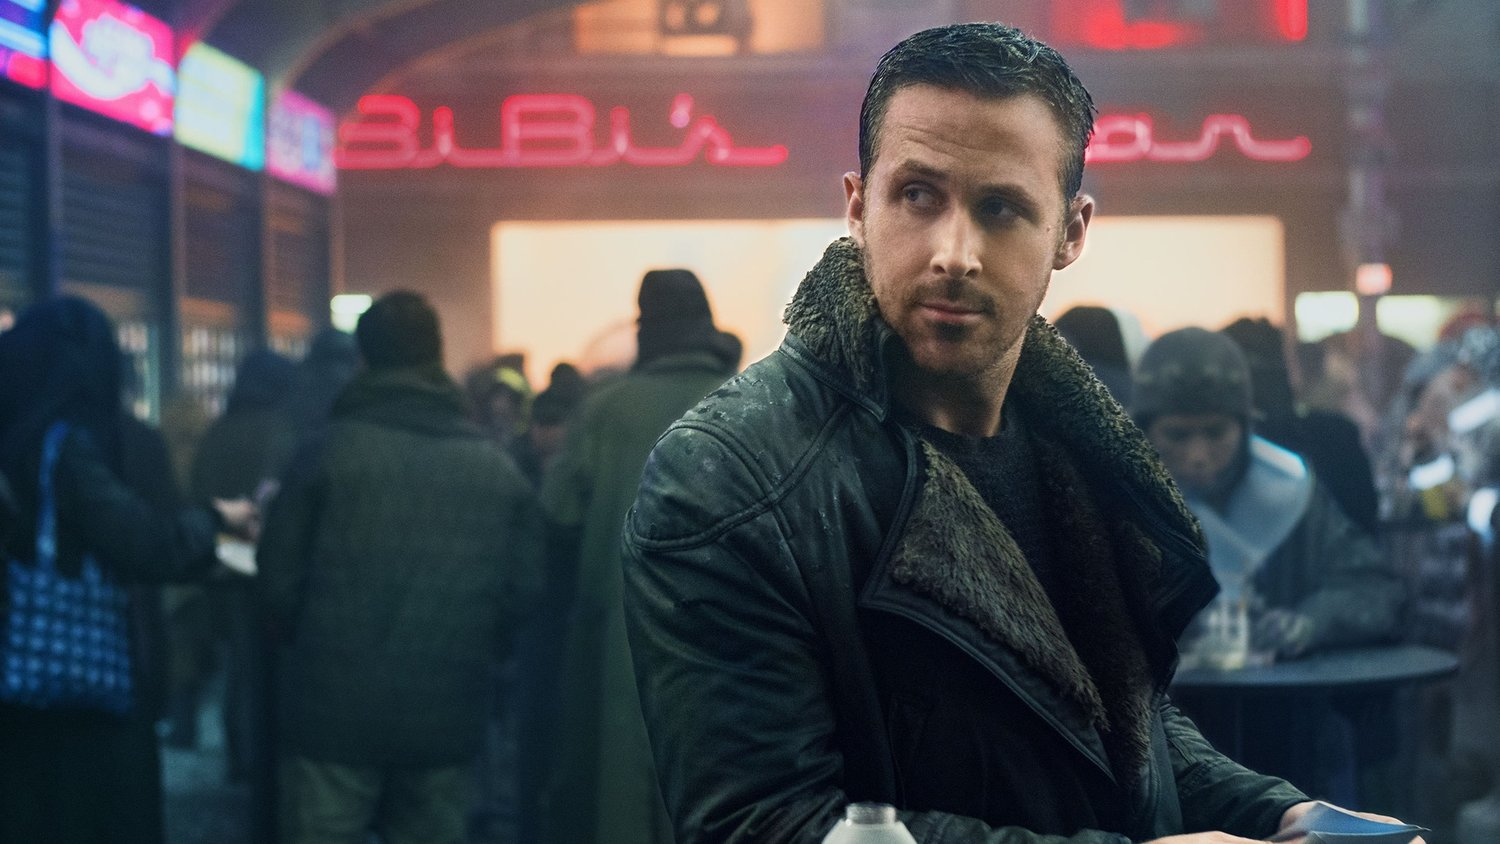 BLADE RUNNER 2049 Won't Rely on CGI Effects and Green Screen Use Is Very Limited